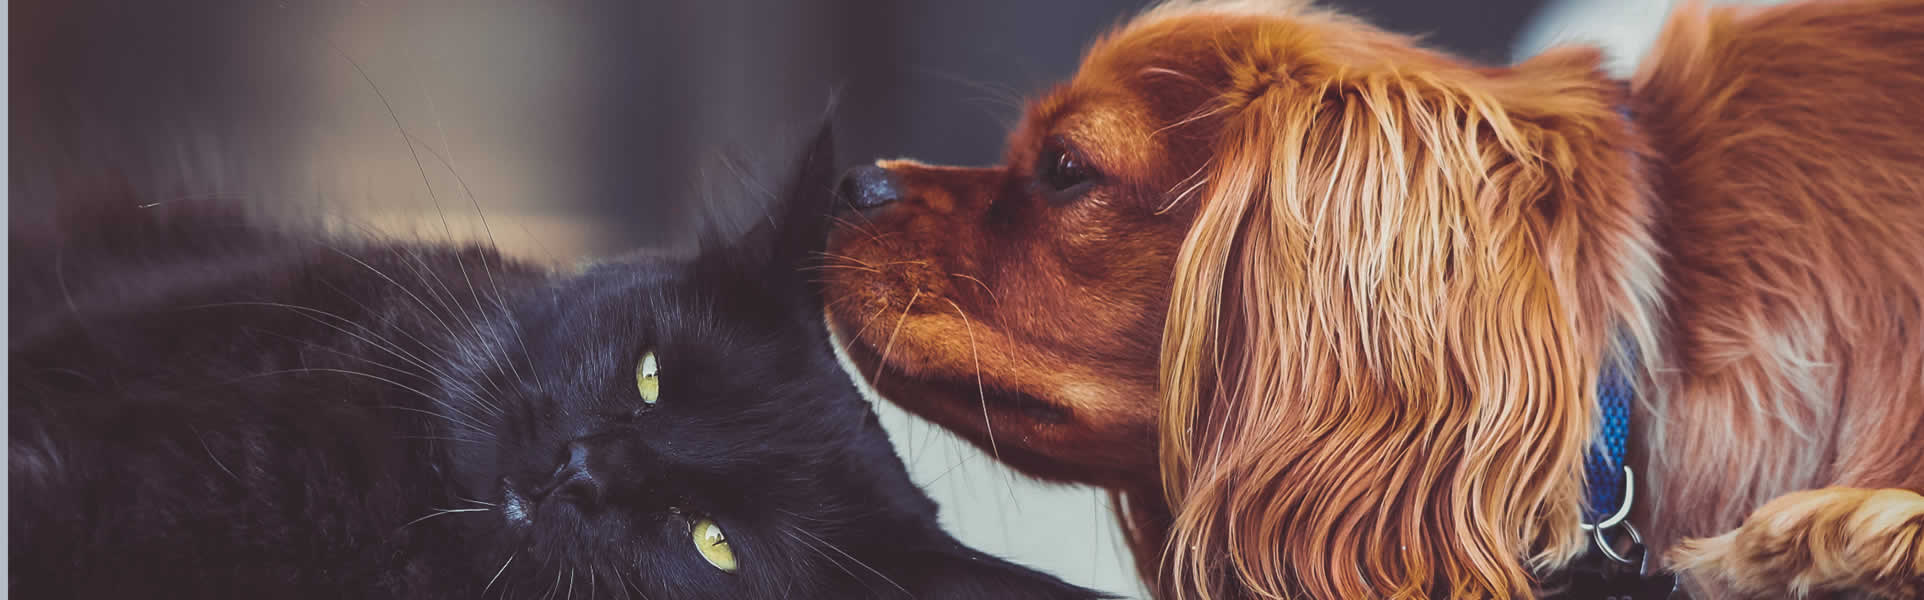 photo of a cat and a dog - do they have empathy?